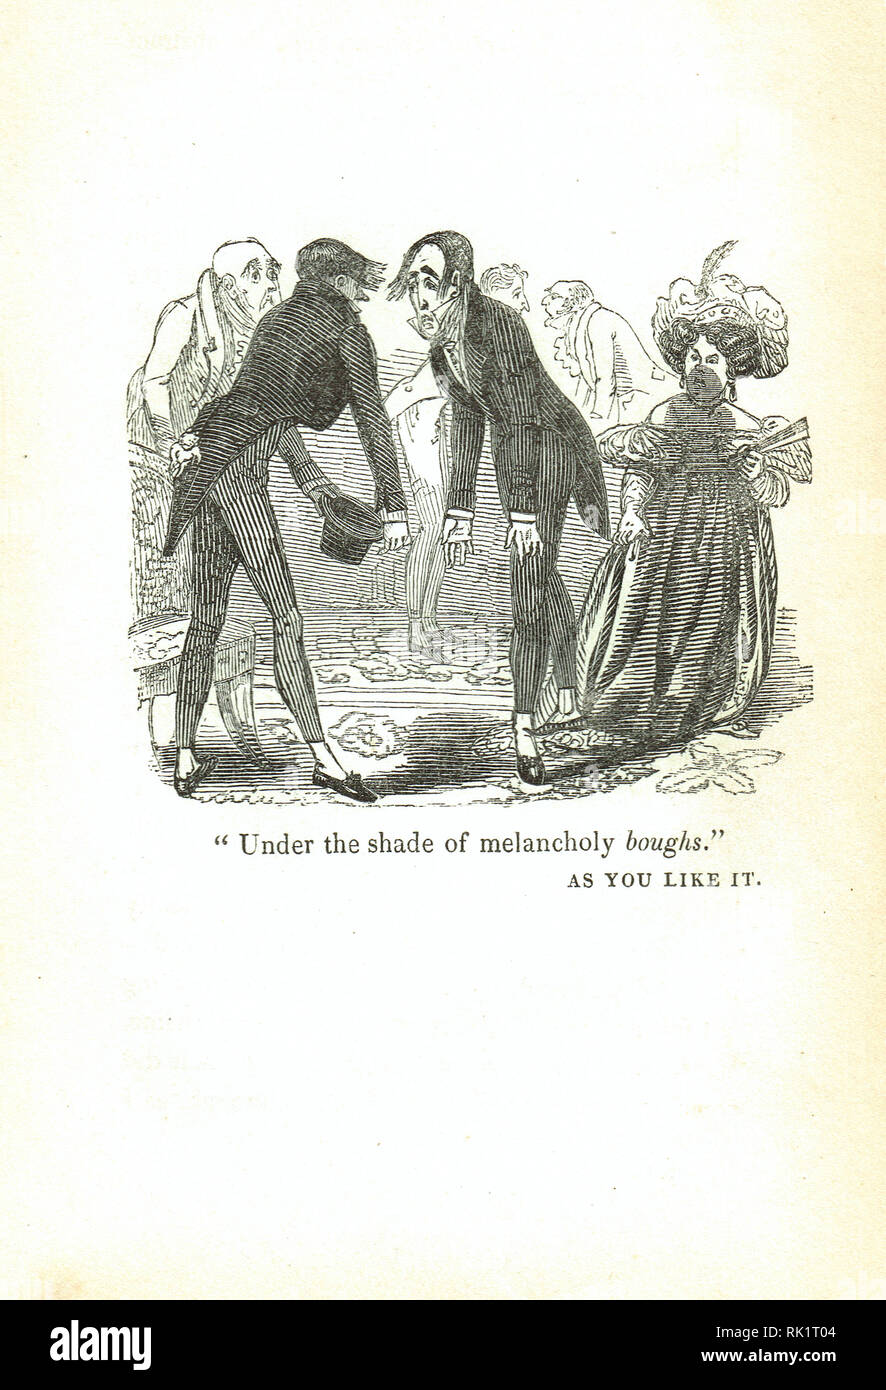 Under the shade of melancholy boughs. Wordplay on bows.   An allusion to the Shakespeare play as you like it. Georgian humour from the Comic offering, or Ladies' melange of literary mirth of 1834 - Stock Image